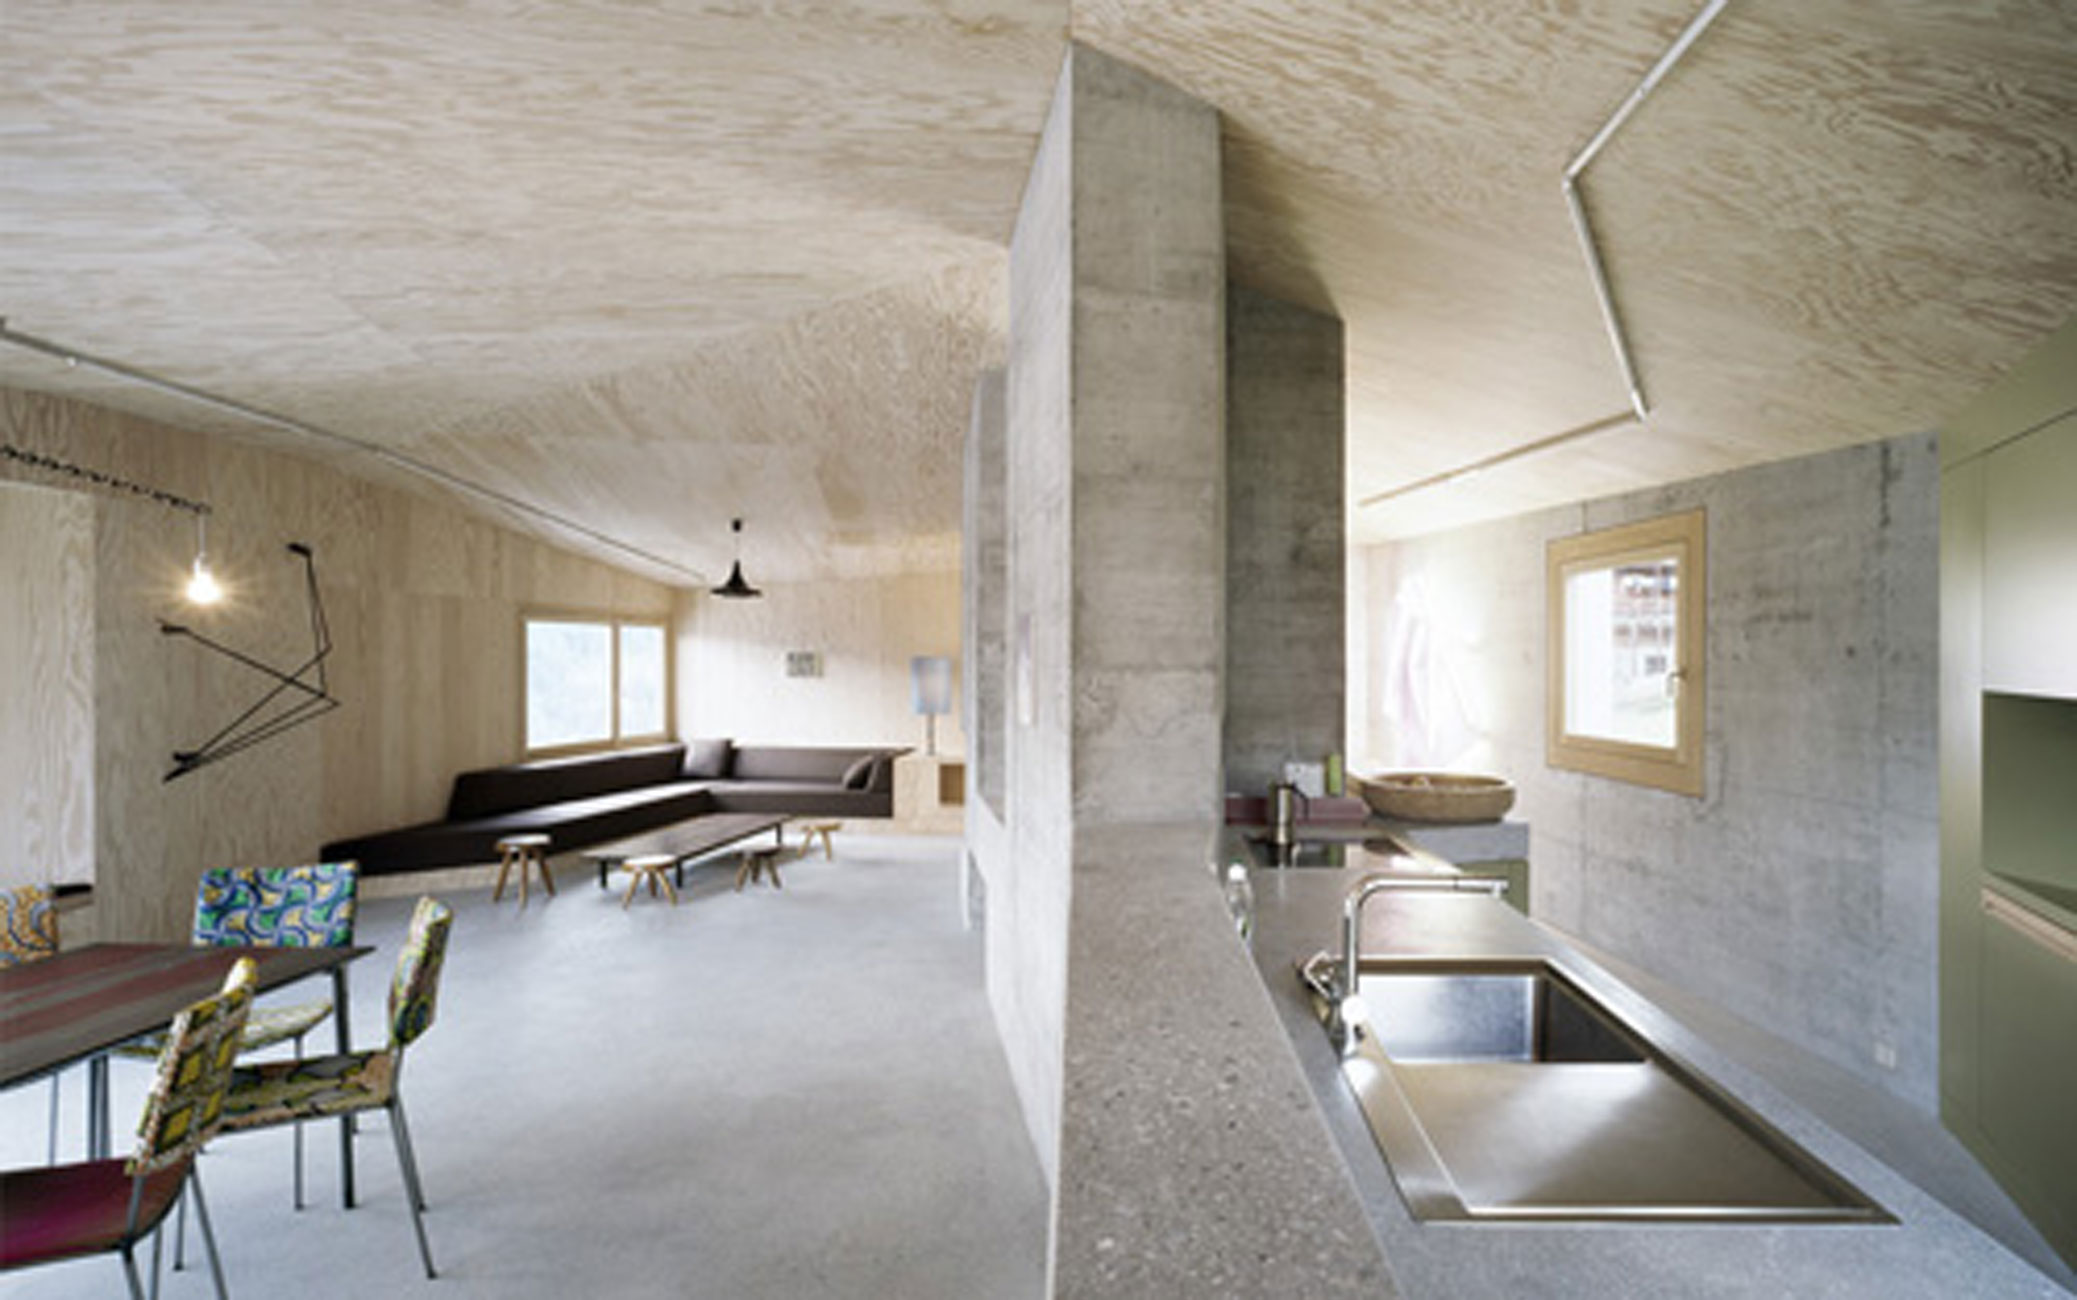 Solid Concrete House Architecture And Minimalist Interior Design In